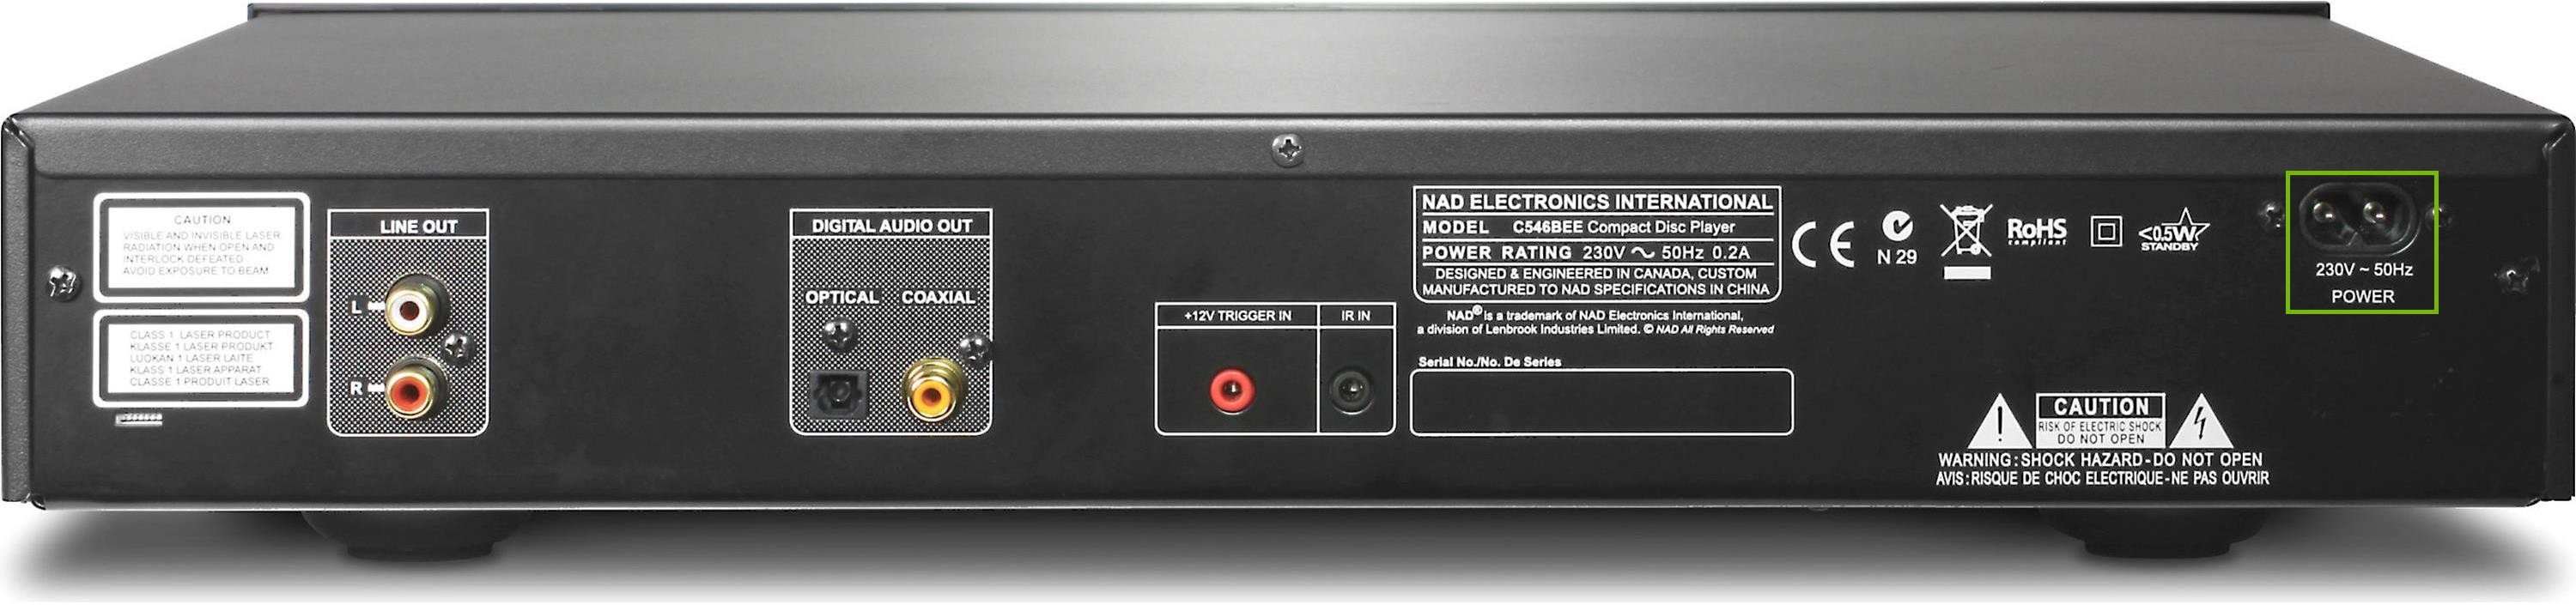 back of cd player power connection highlighted